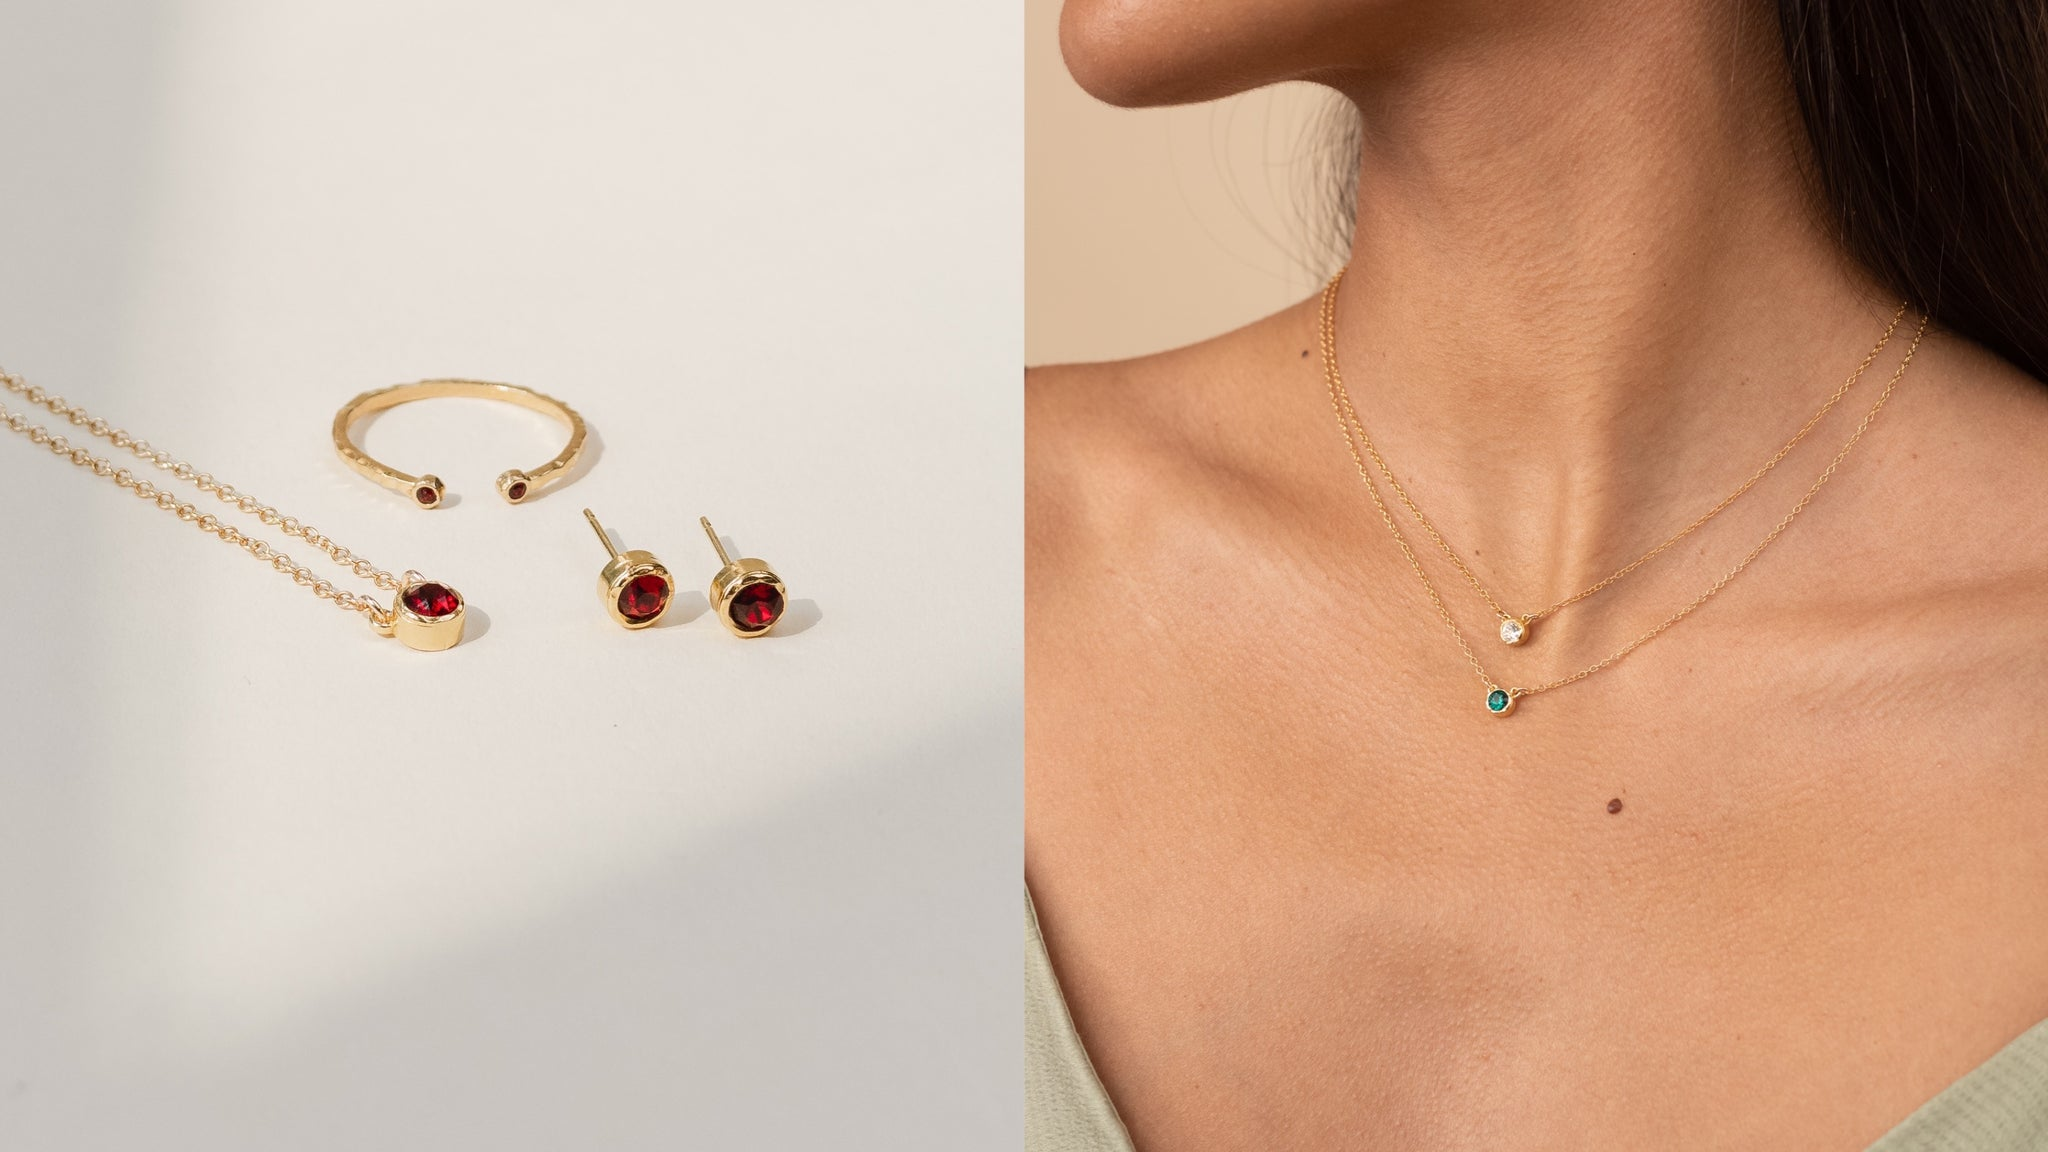 Birthstone Collection by Katie Dean Jewelry. Handmade in California. Dainty, personalized gifts, perfect for layering.